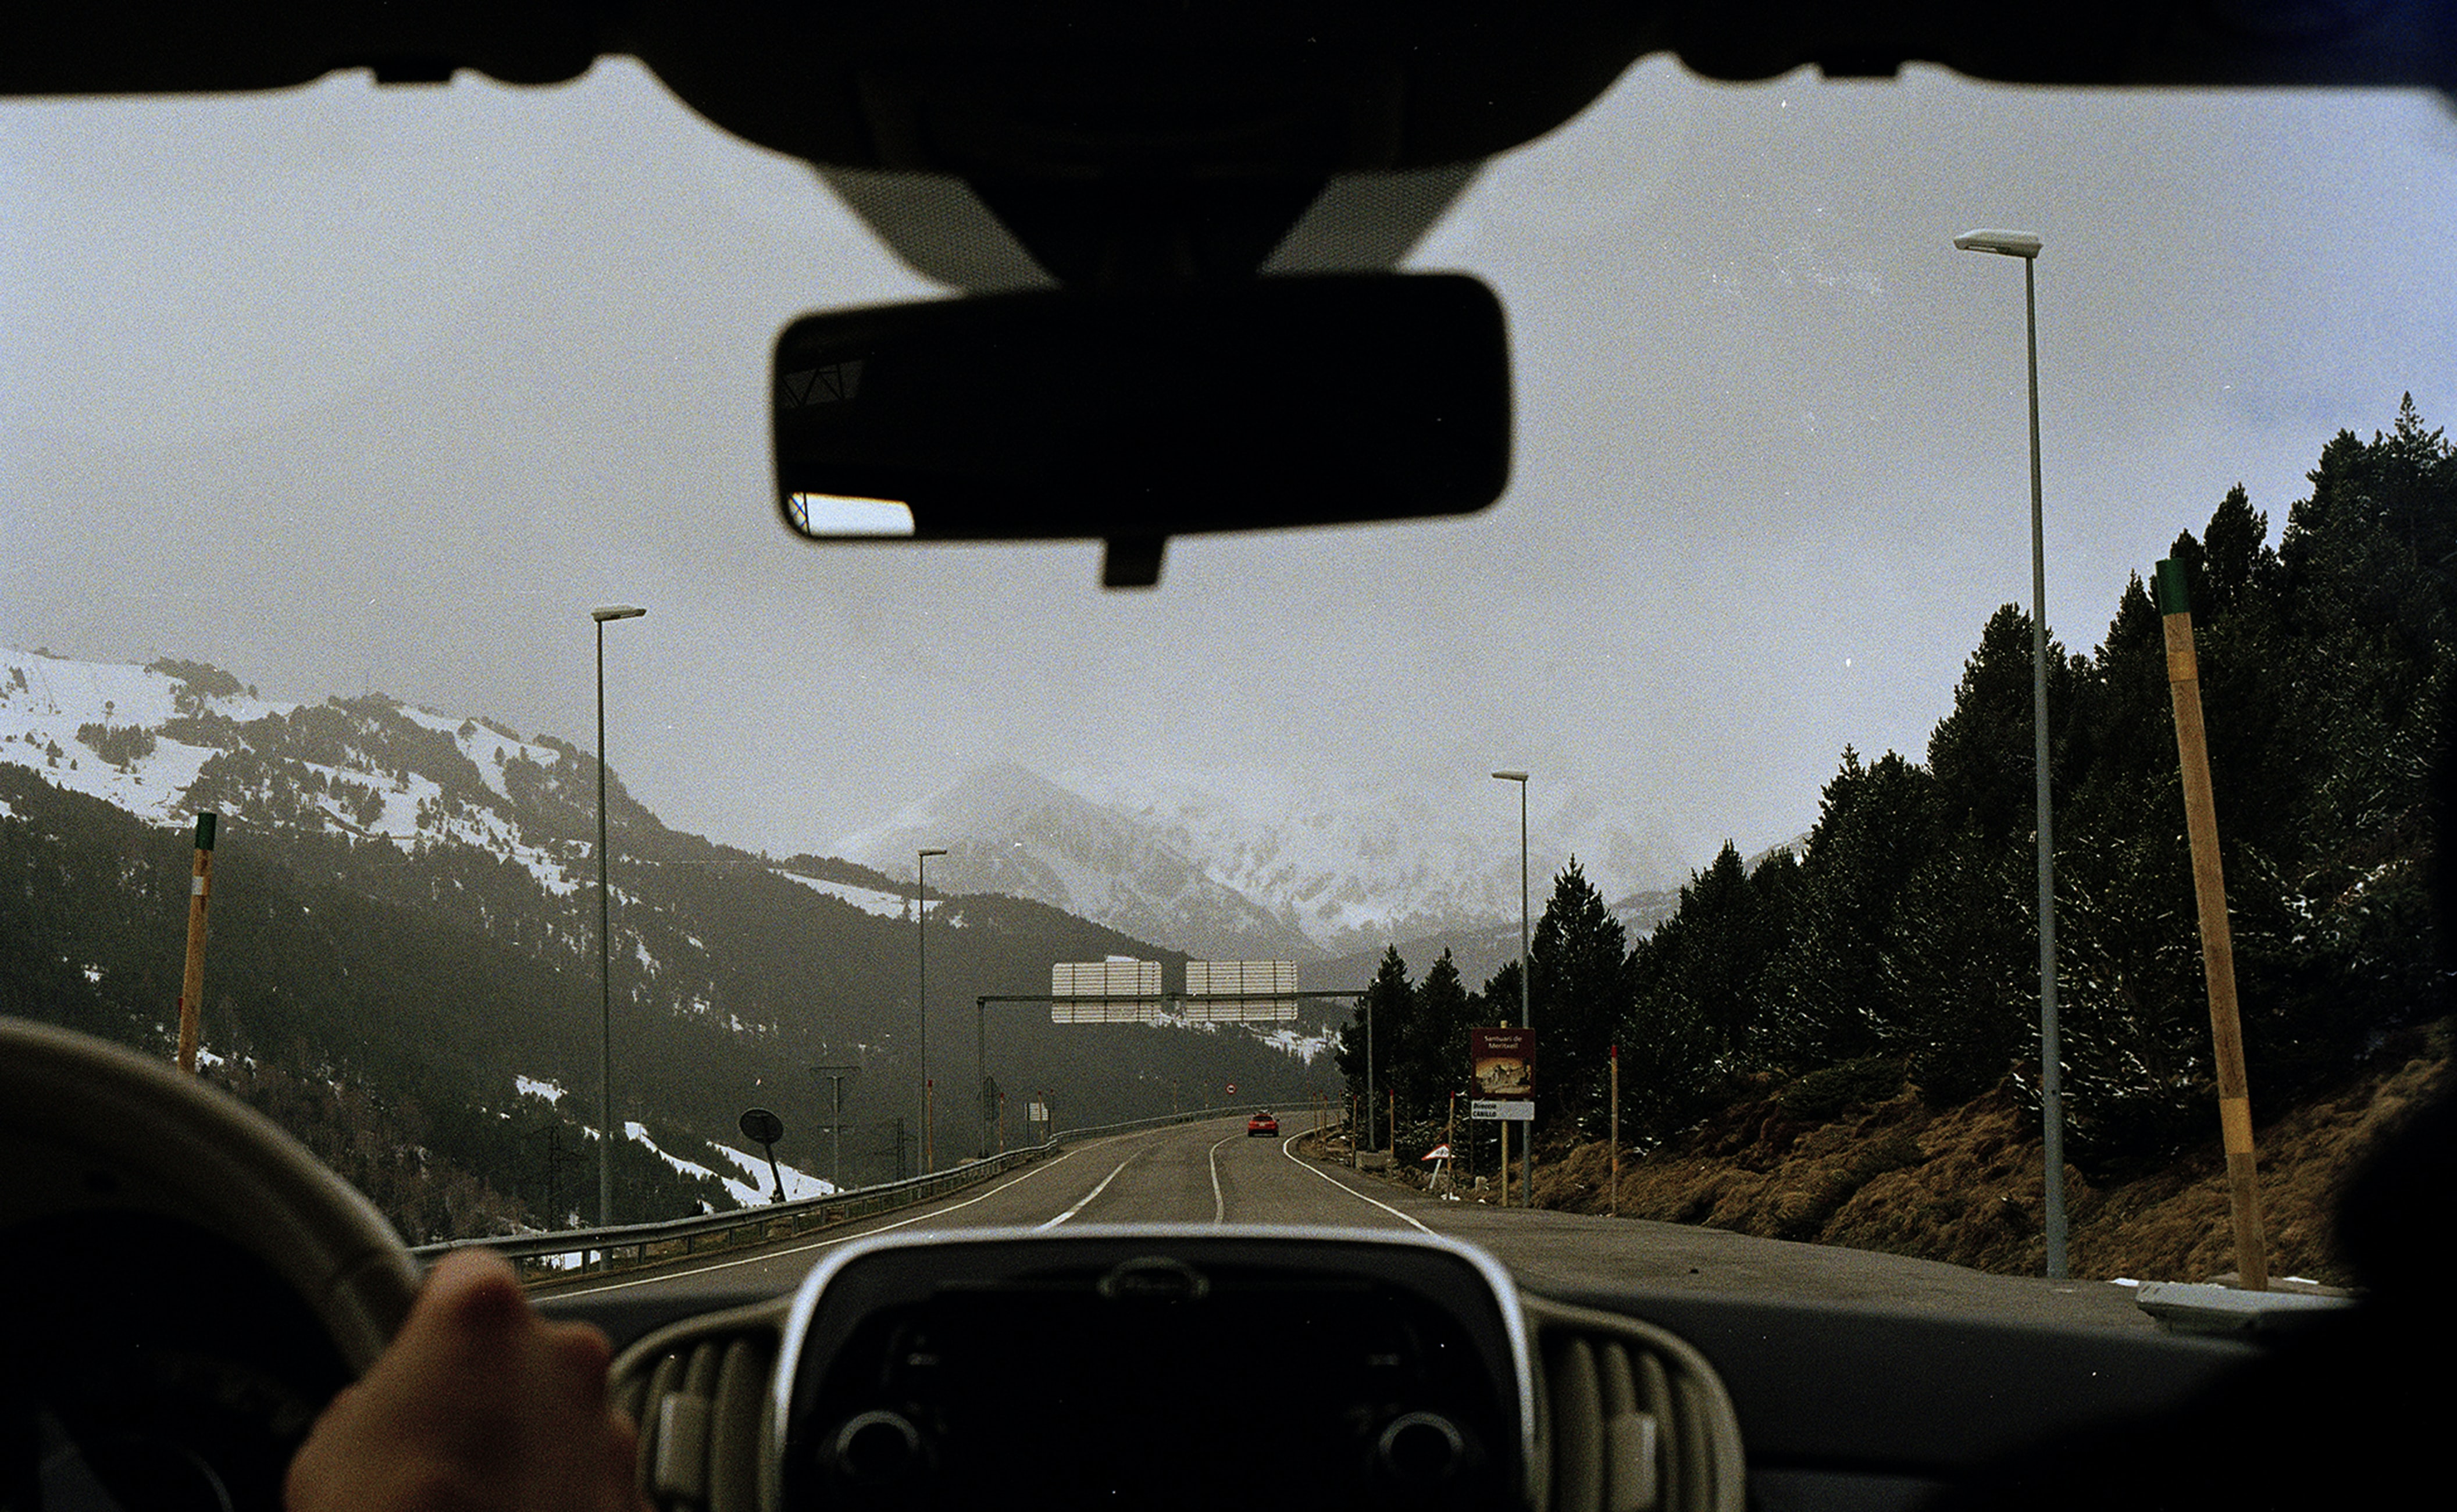 A person road tripping on the highway towards the snowcapped mountains of Andorra